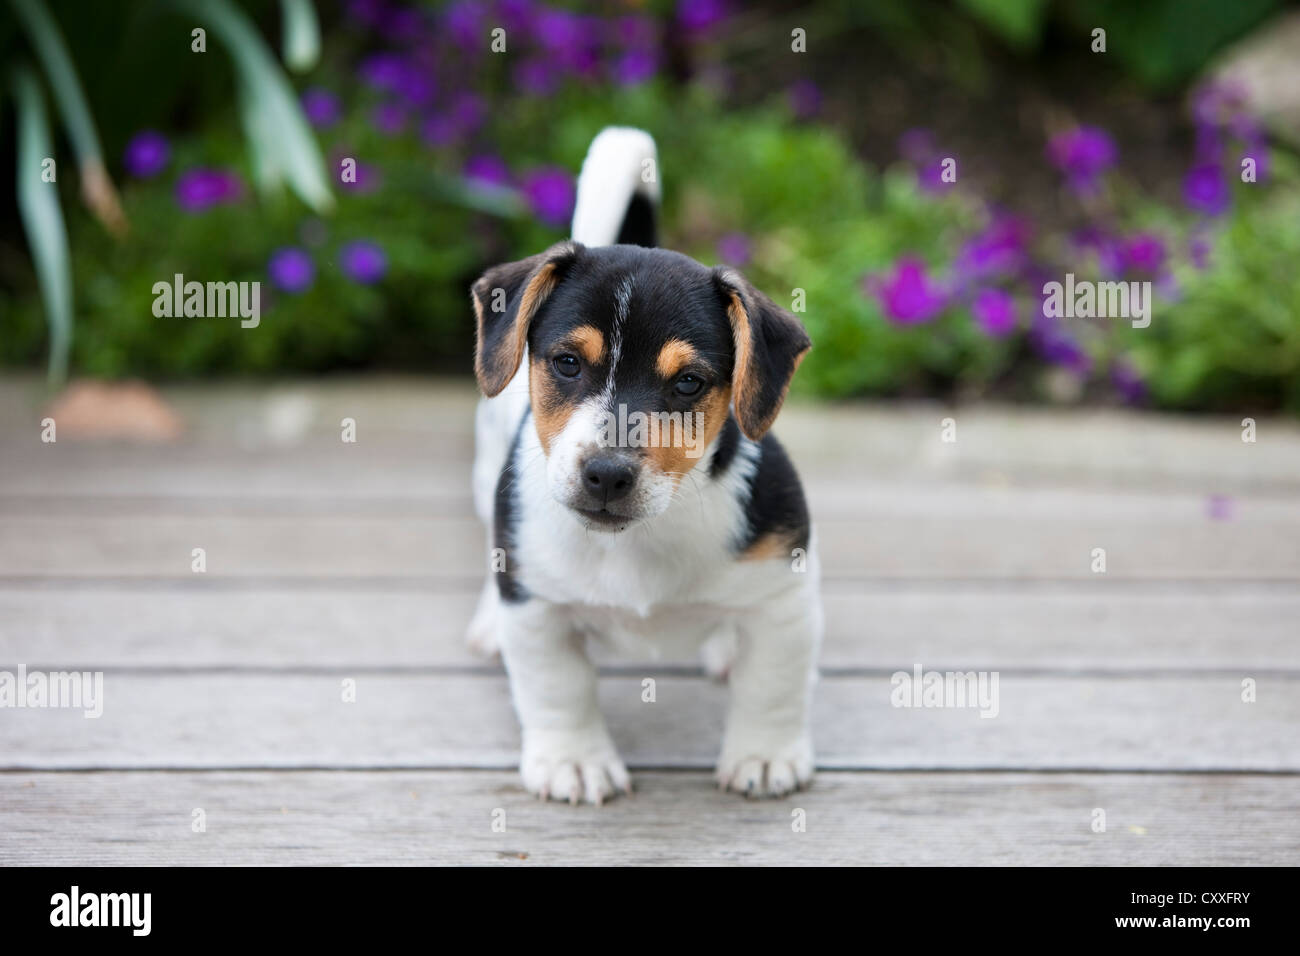 Jack Russell Terrier, puppy standing on wooden floor, northern Tyrol, Austria, Europe, NON EXCLUSIVE USAGE: CALENDAR, - Stock Image